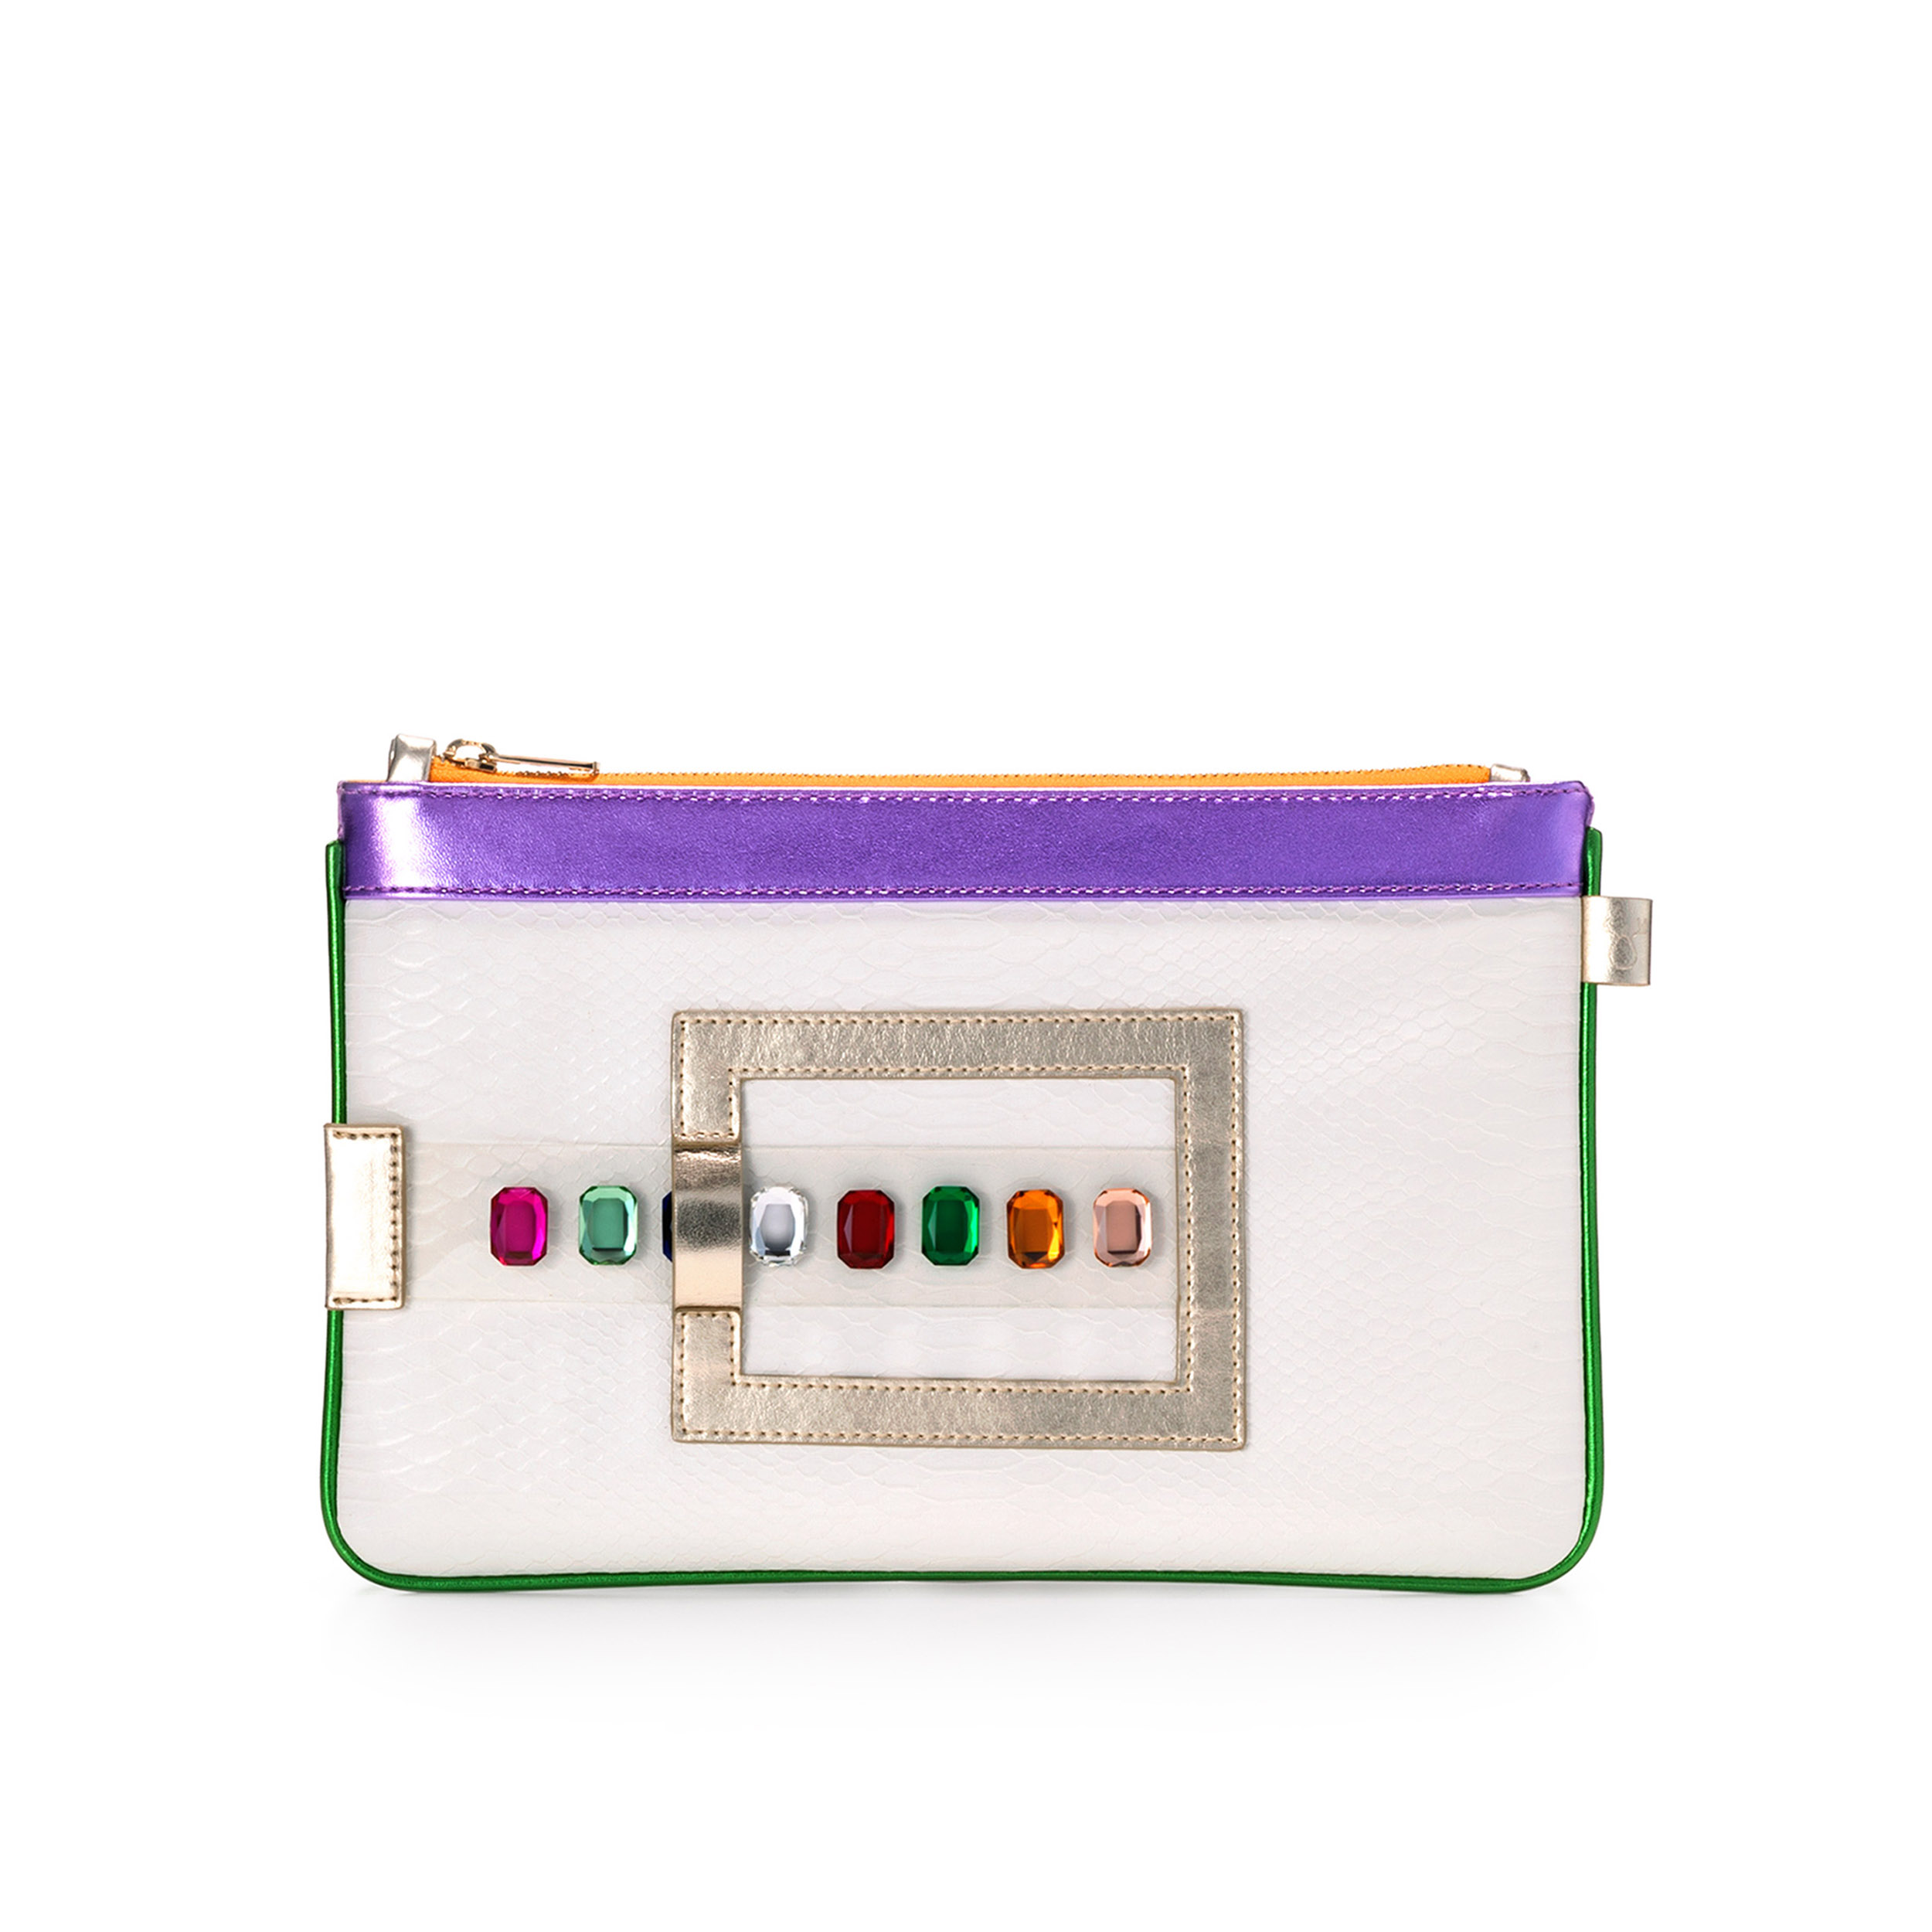 GEMINI-vegan-bracelet-clutch-mini-tablet-size4.jpg